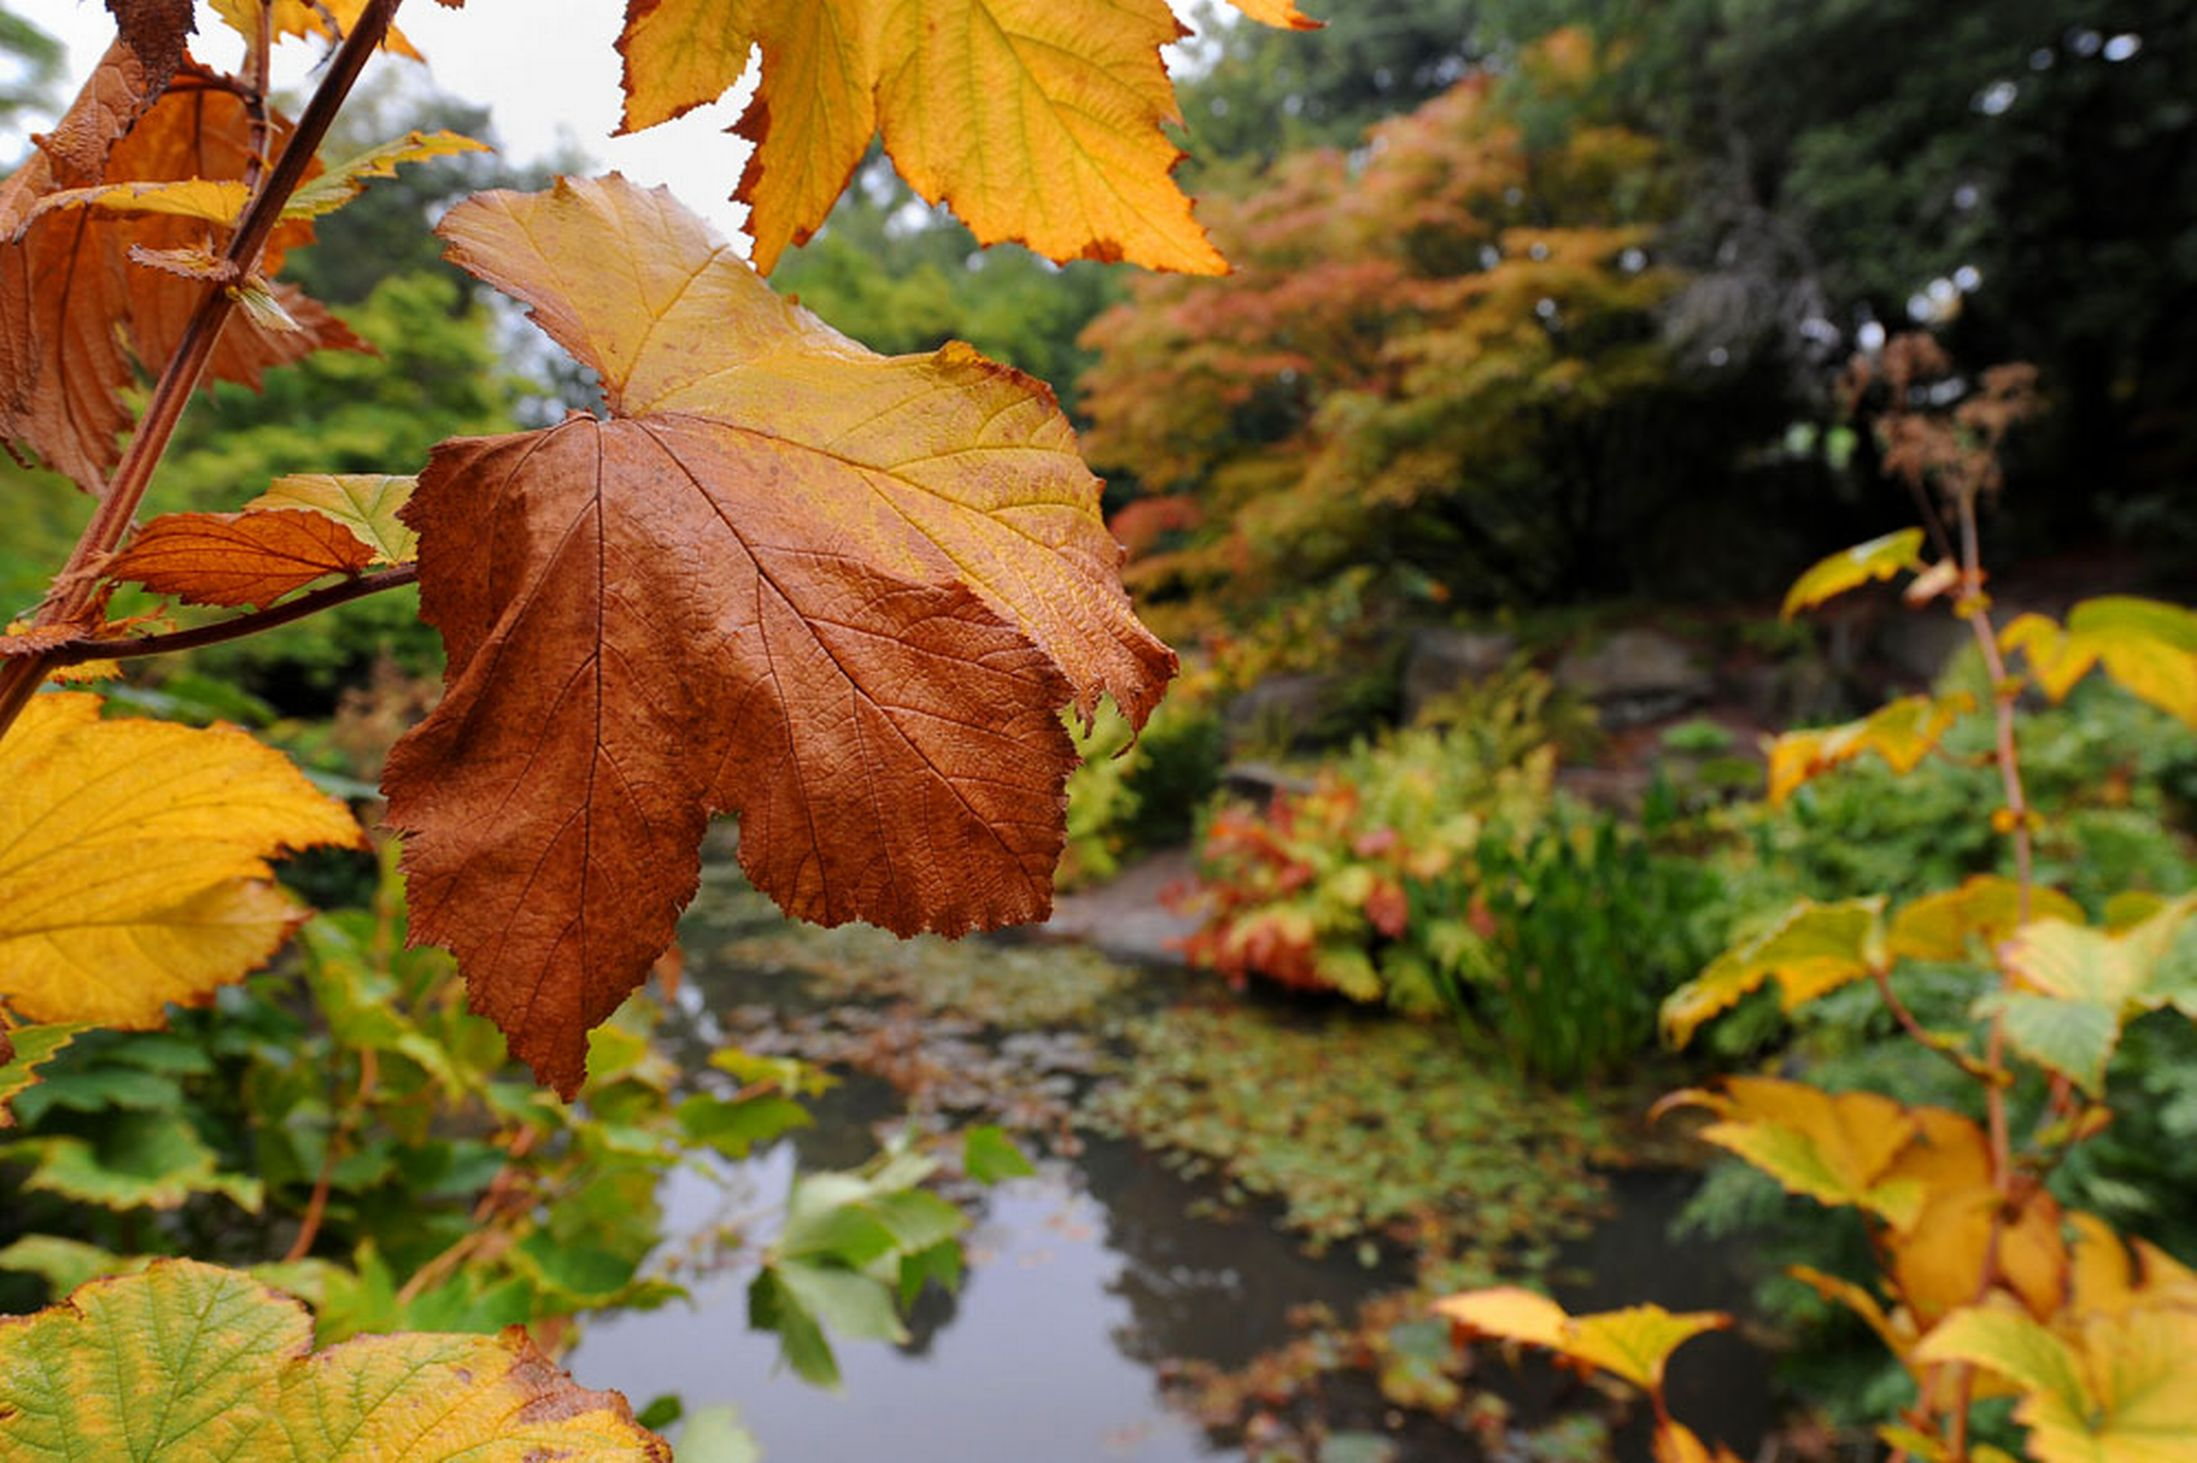 Autumn-colours-begin-to-show-at-the-Birmingham-Botanical-Gardens-Edgbaston-18th-October-2641173